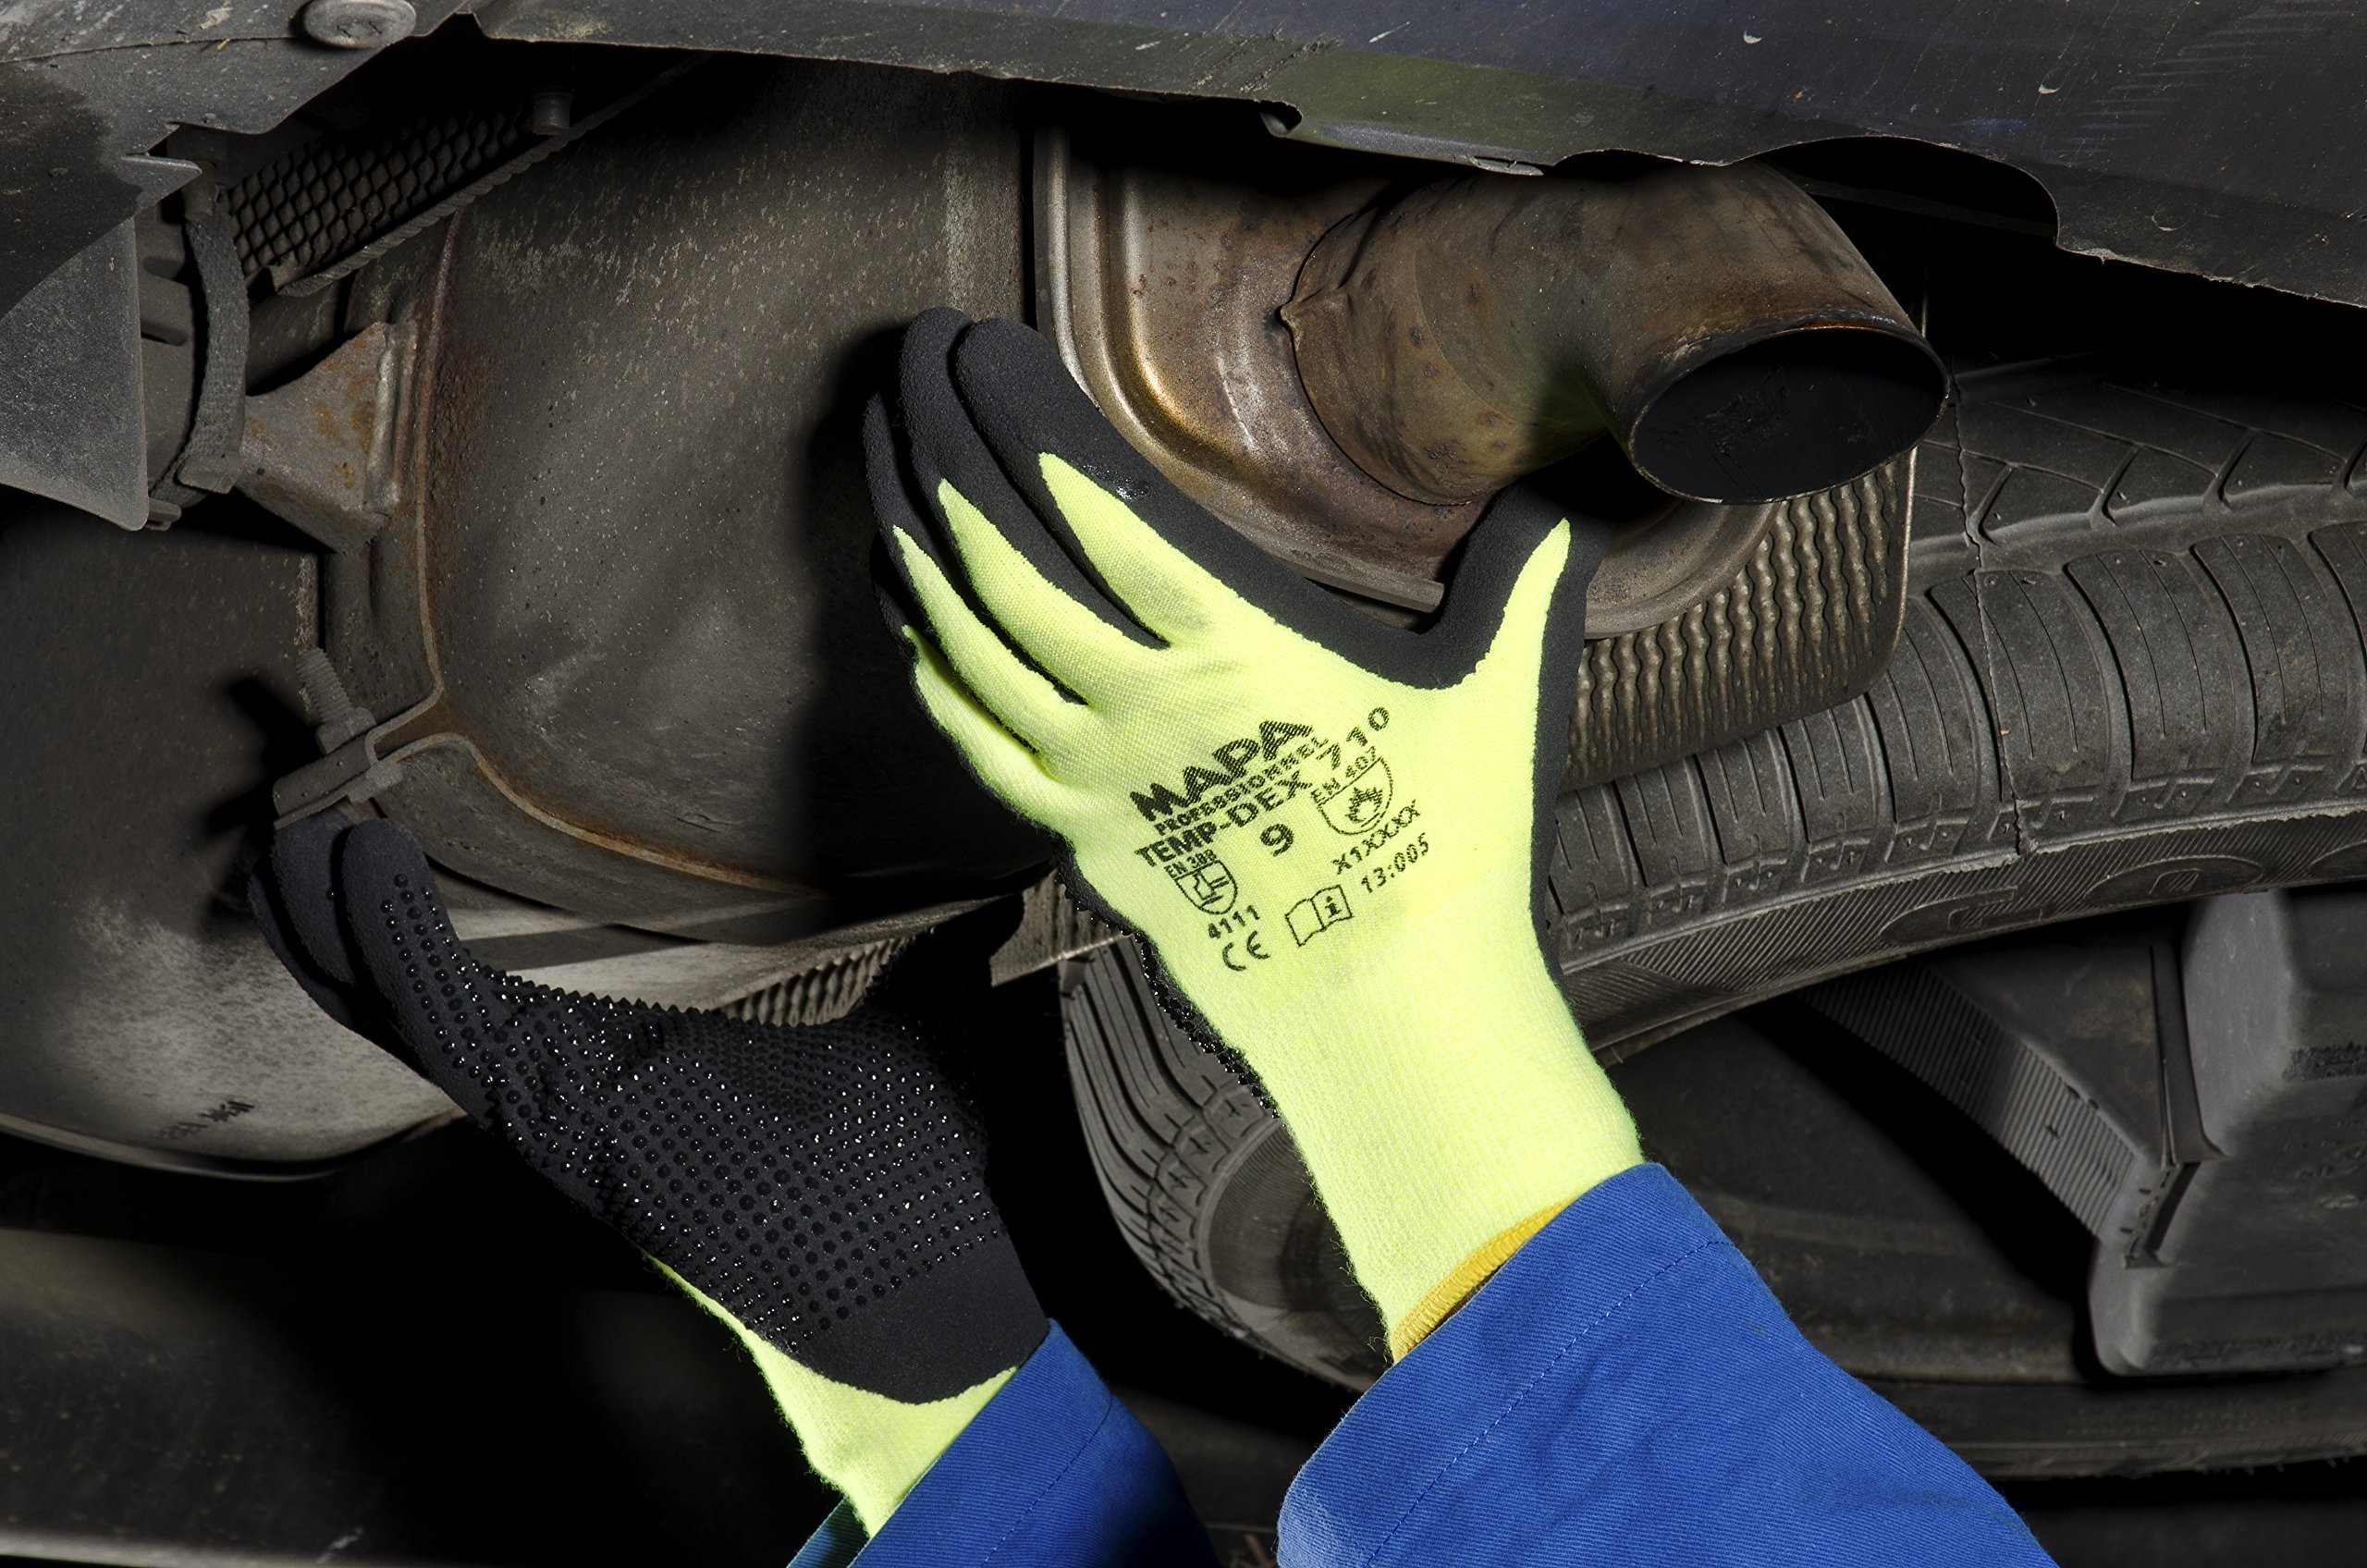 MAPA Temp-Dex 710 Nitrile Lowweight Glove, High Temperature, 10-1/4'' Length, Size 7, Black/Green by MAPA Professional (Image #1)